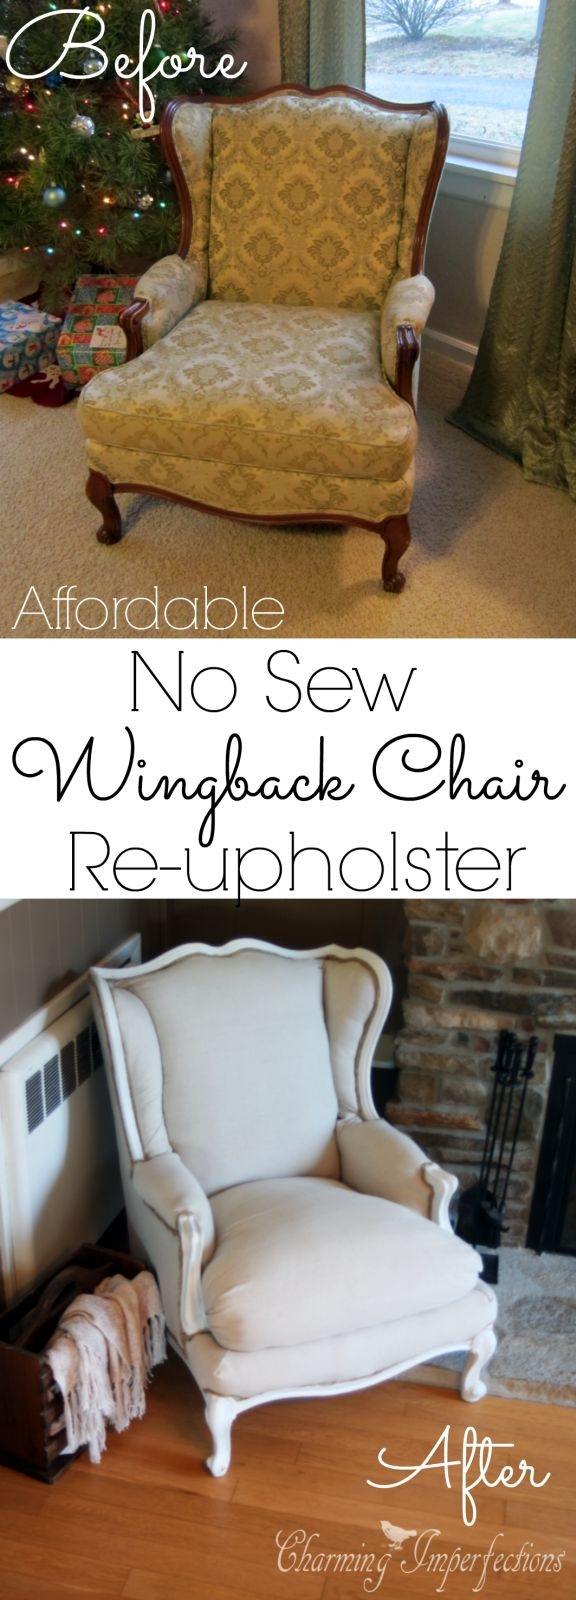 Best ideas about DIY Chair Covers No Sew . Save or Pin s Diy Slipcover No Sew MediasUpload Now.